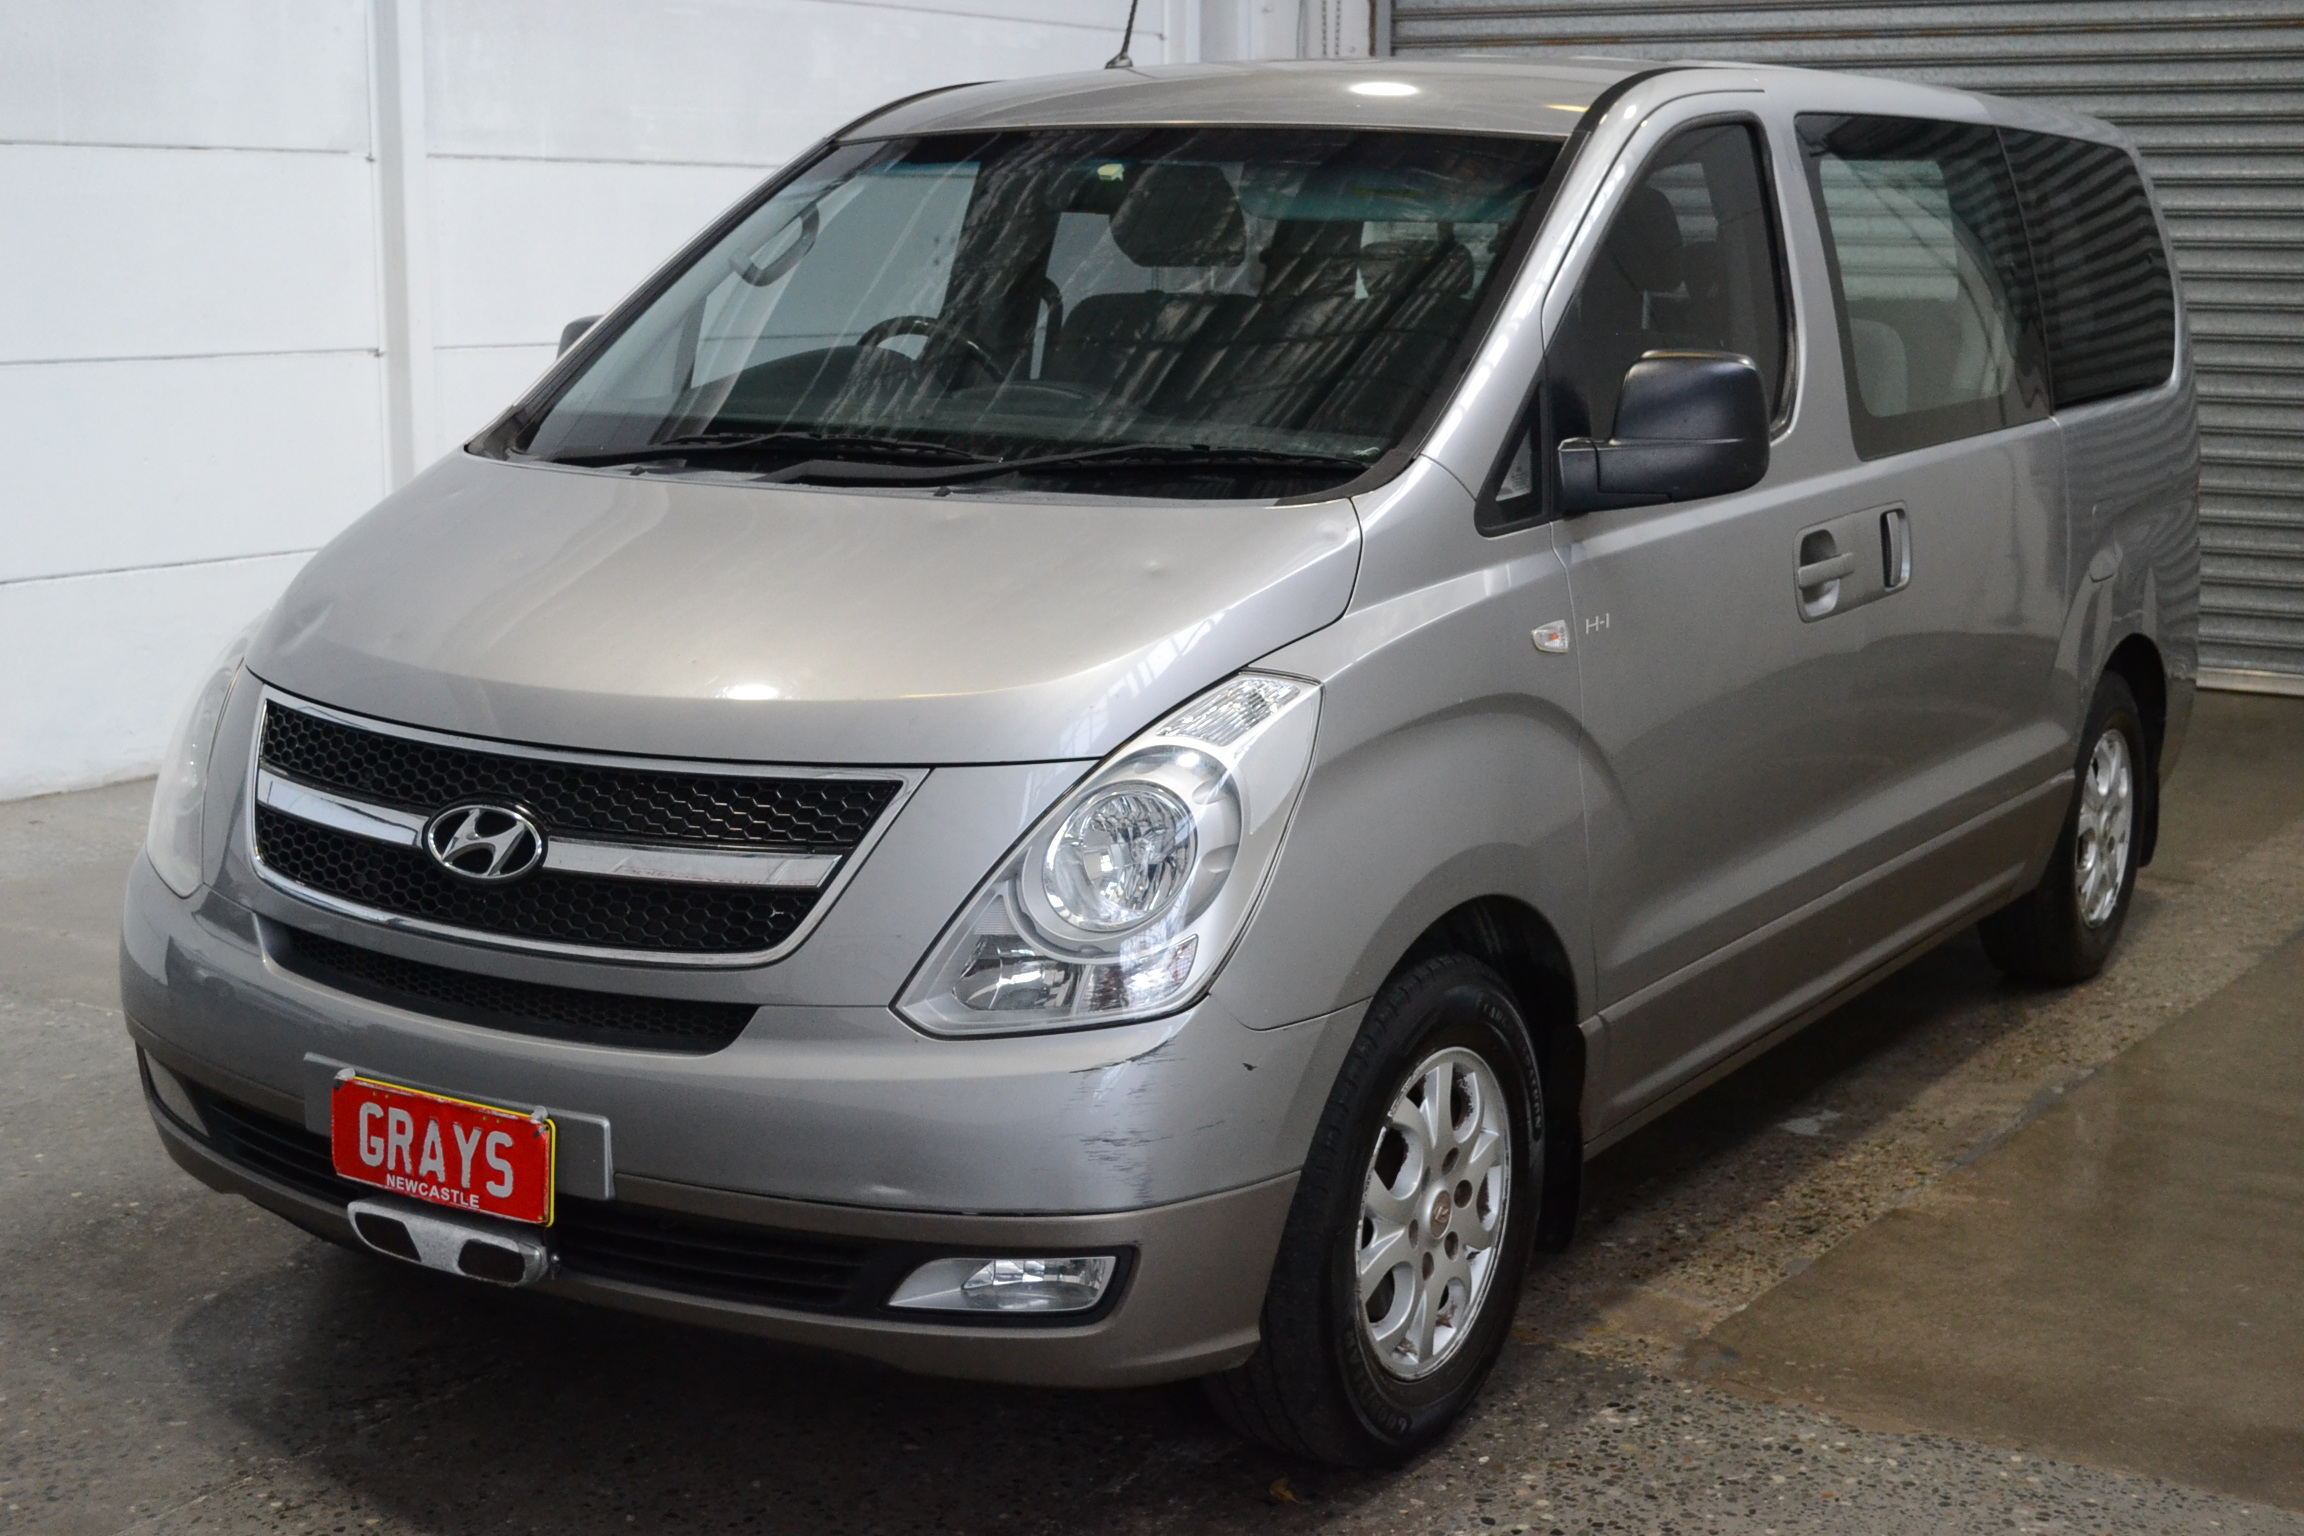 2012 Hyundai iMAX TQ Turbo Diesel Automatic 8 Seats People Mover